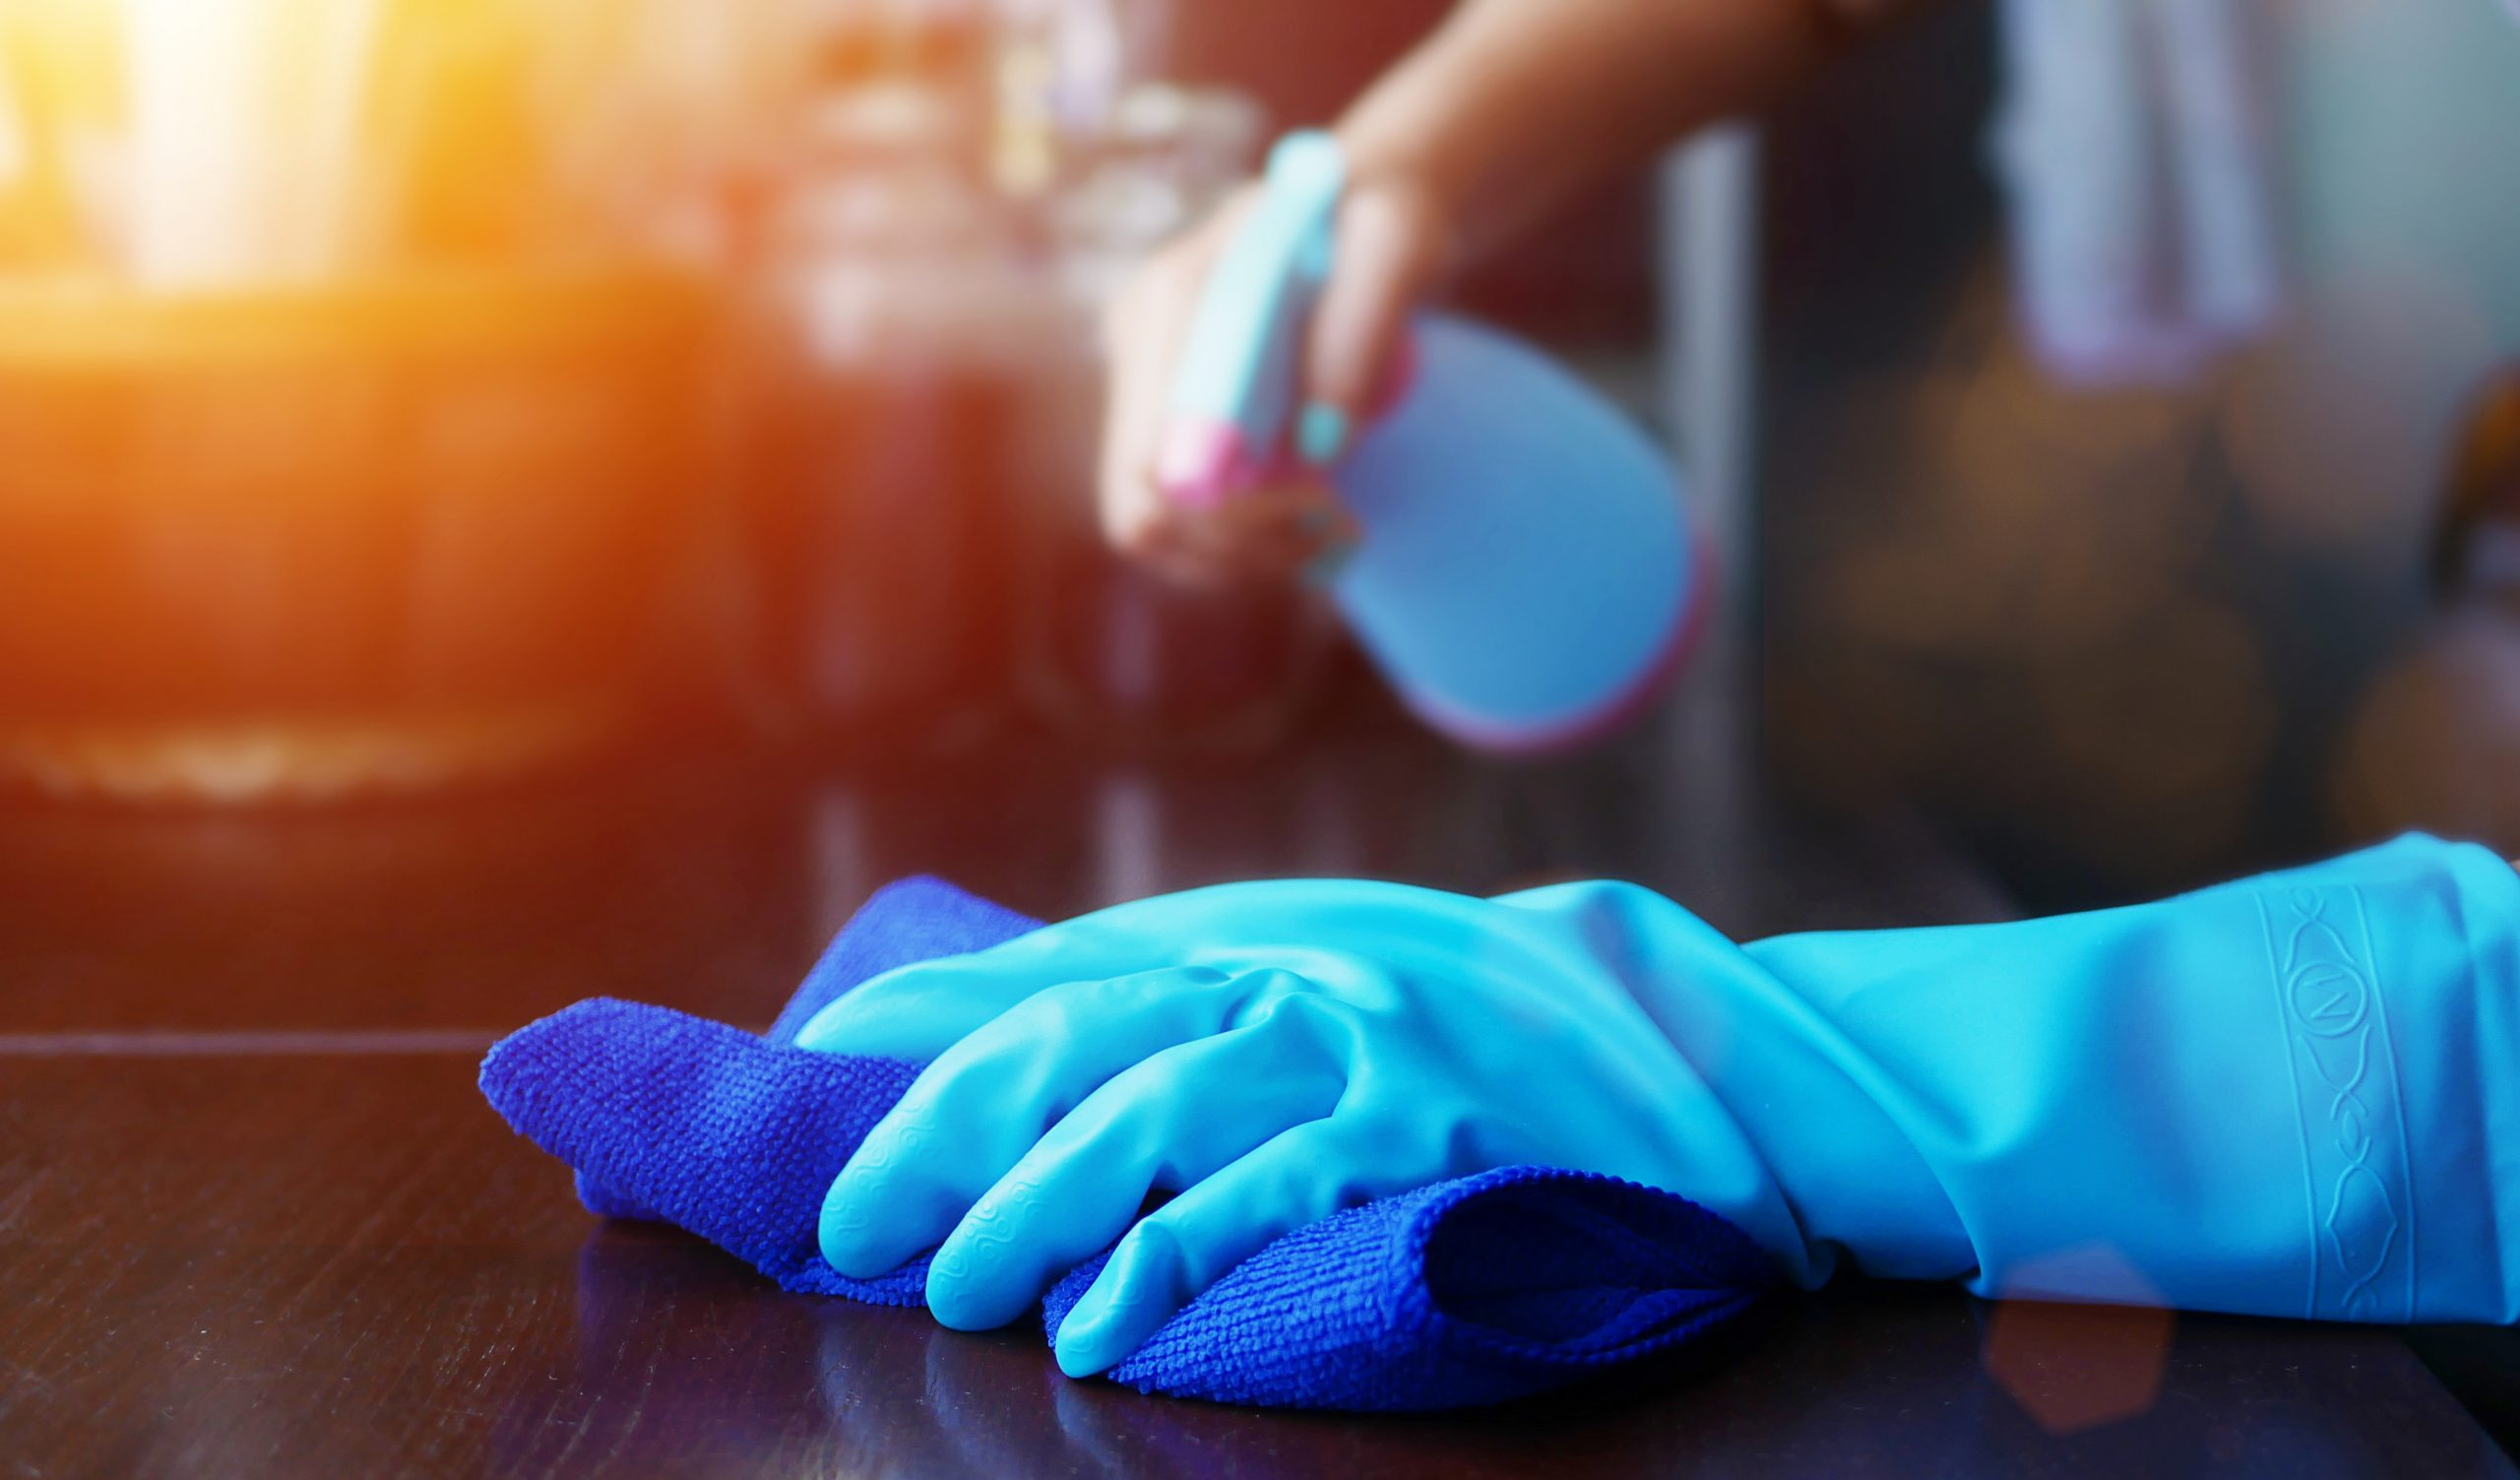 Gloved hands sterilizing surface due to virus